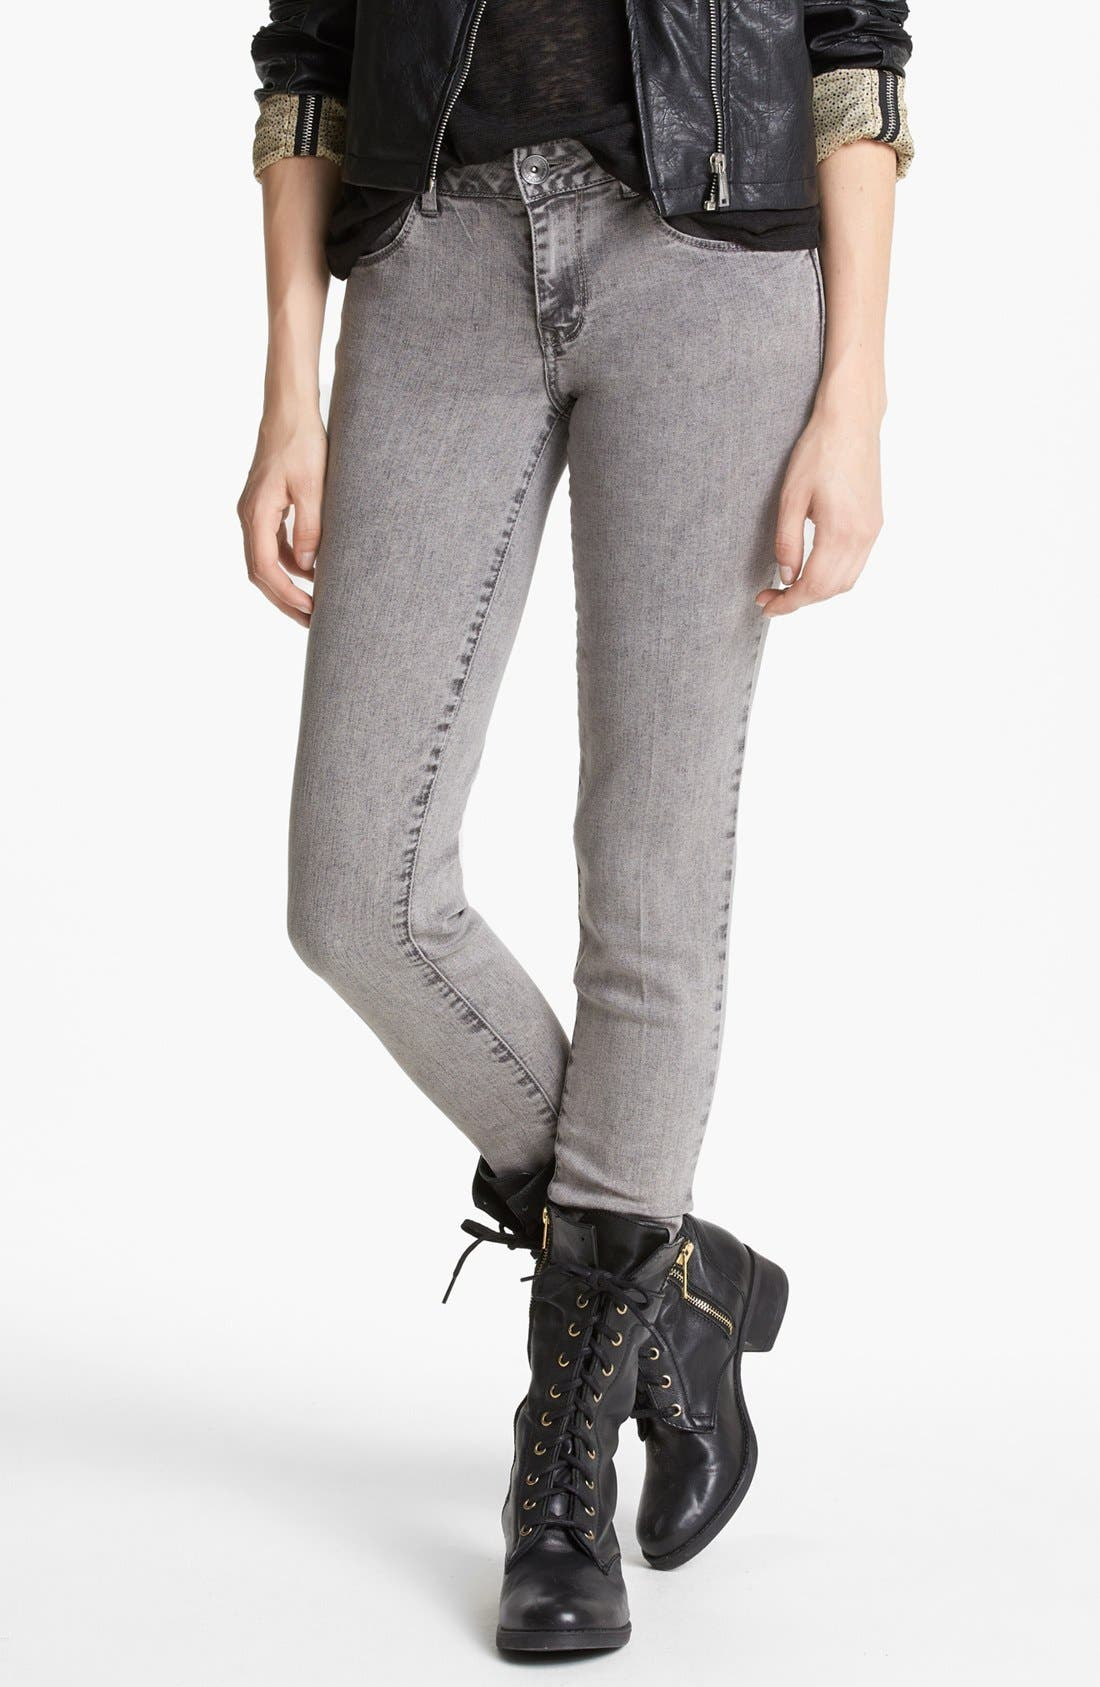 Alternate Image 1 Selected - Jolt Acid Wash Skinny Jeans (Grey) (Juniors)